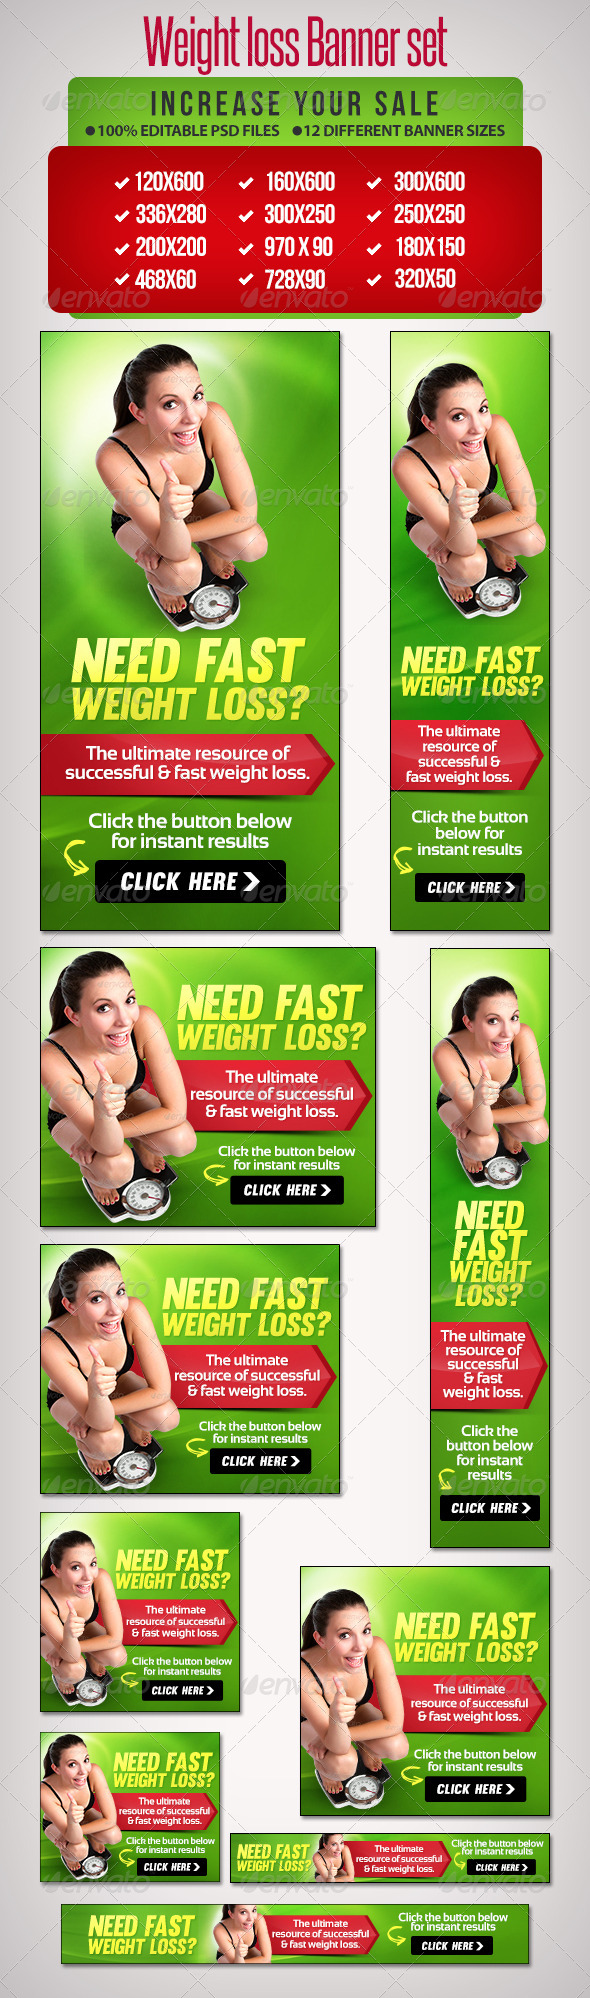 GraphicRiver Weight Loss Banner Set 8 6665548